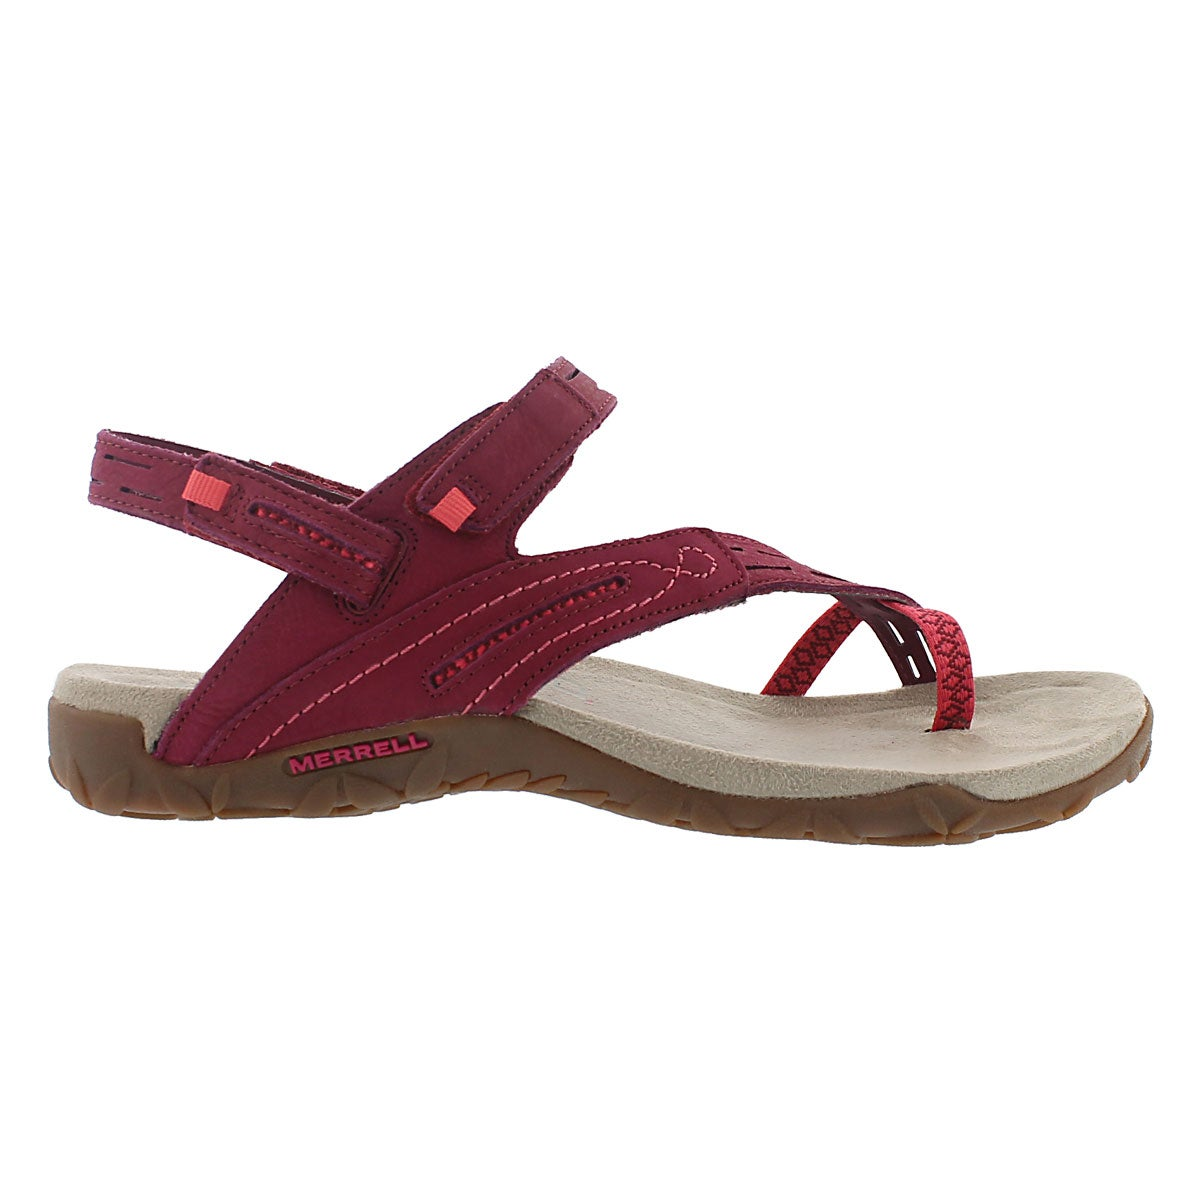 Brilliant Merrell Women39s Siren Ginger Brindle ClosedToe Sandal J85144 6 UK